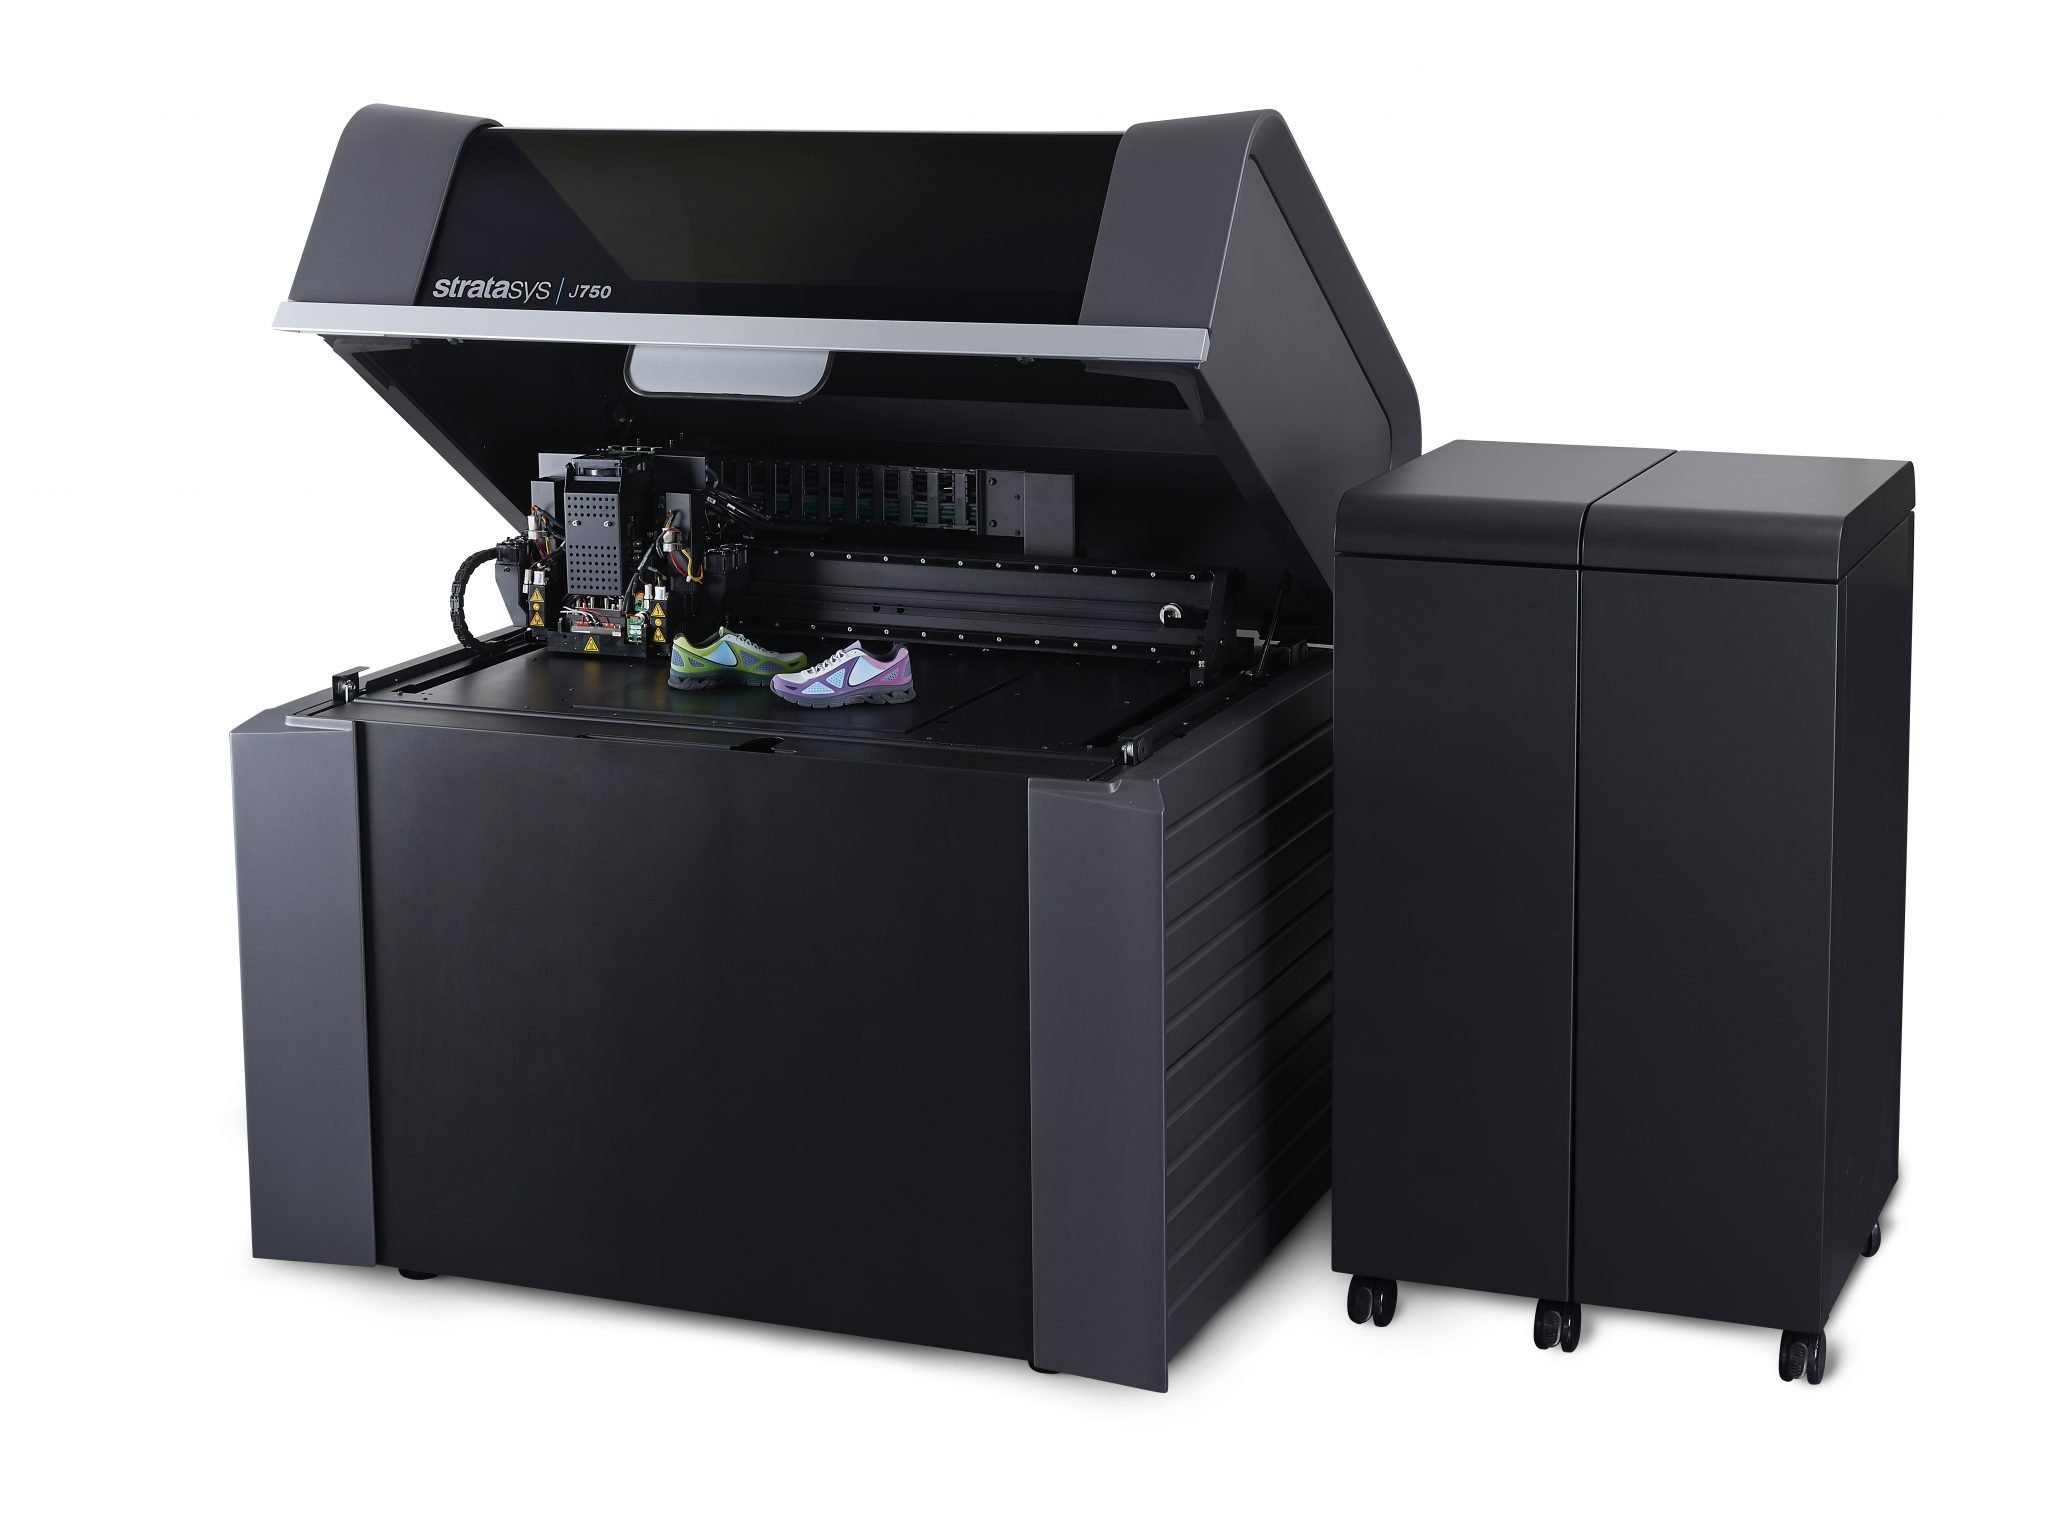 The Stratsys J750 the world's only full color, multimaterial 3D printer